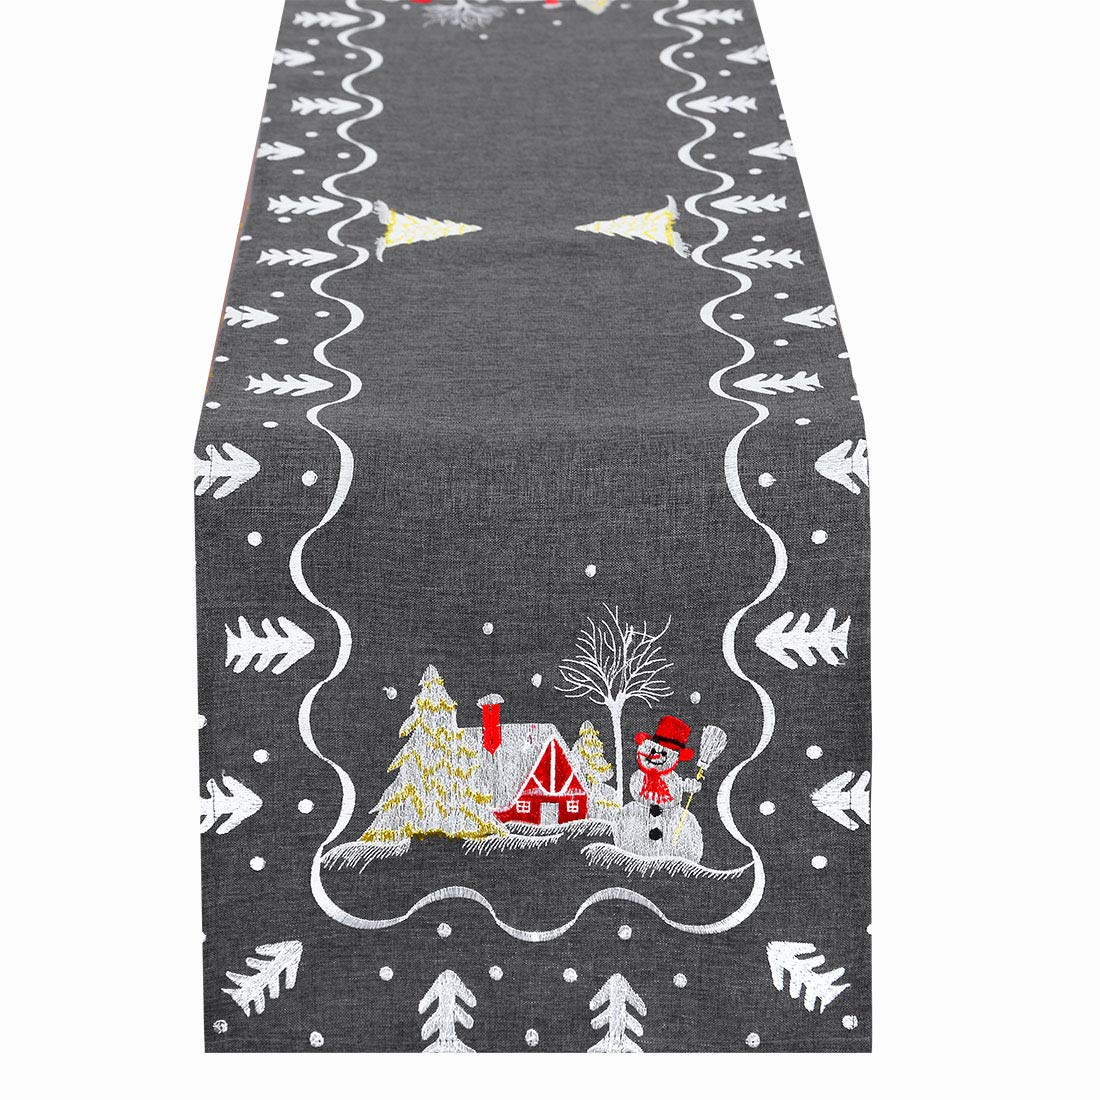 Simhomsen Embroidered Snowman Table Runner for Christmas Holidays Decorations  Dark Gray  13   69 Inch